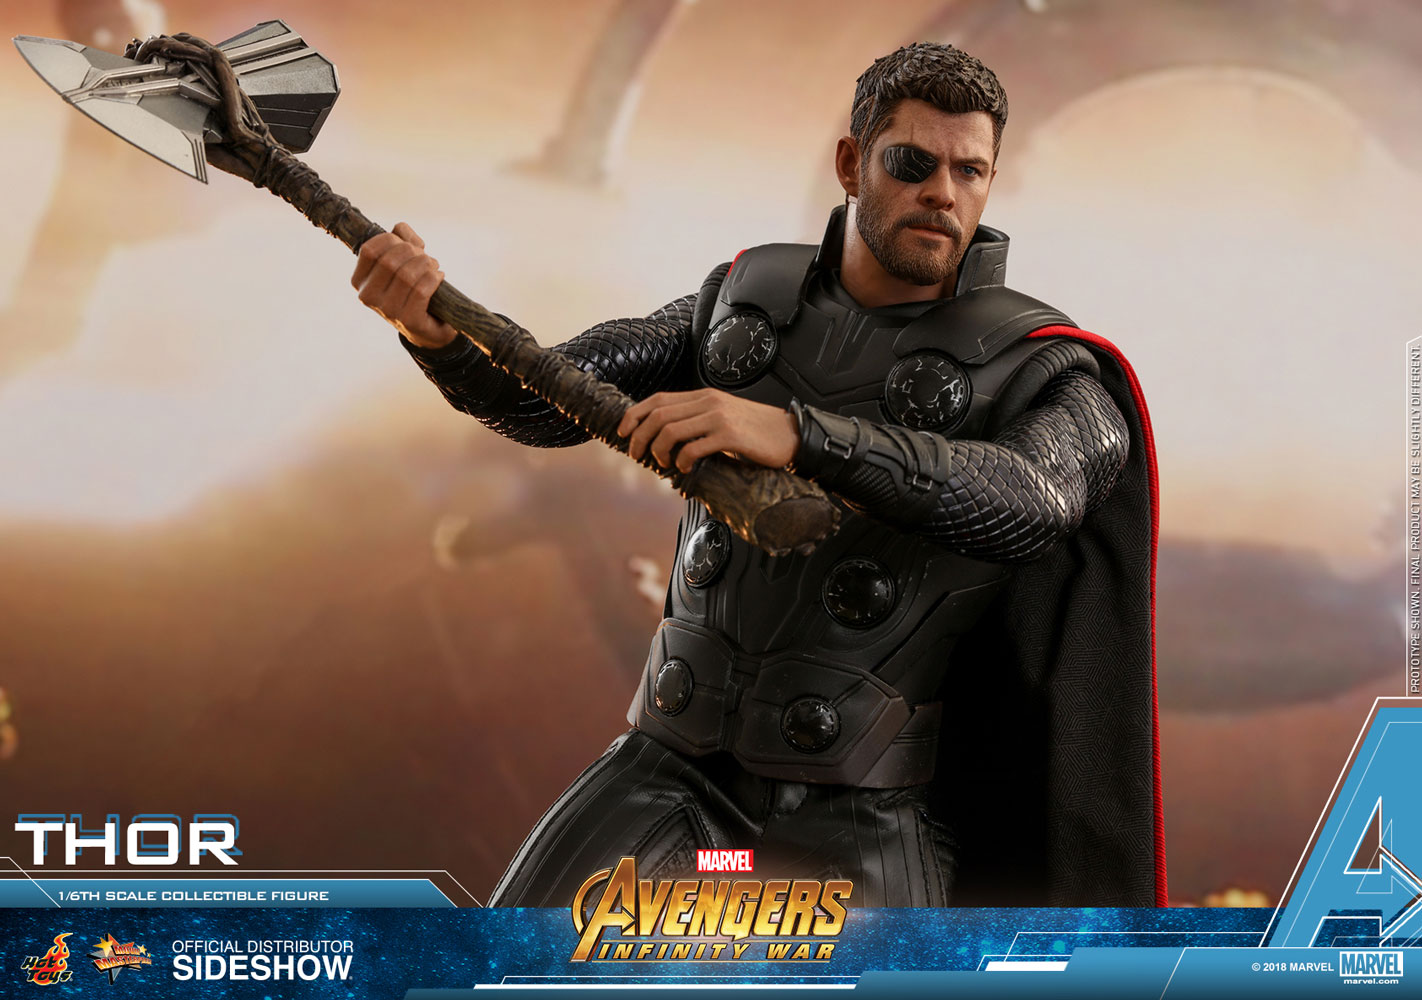 Not Toys For 2018 From Moive : Hot toys infinity war thor iron man figures up for